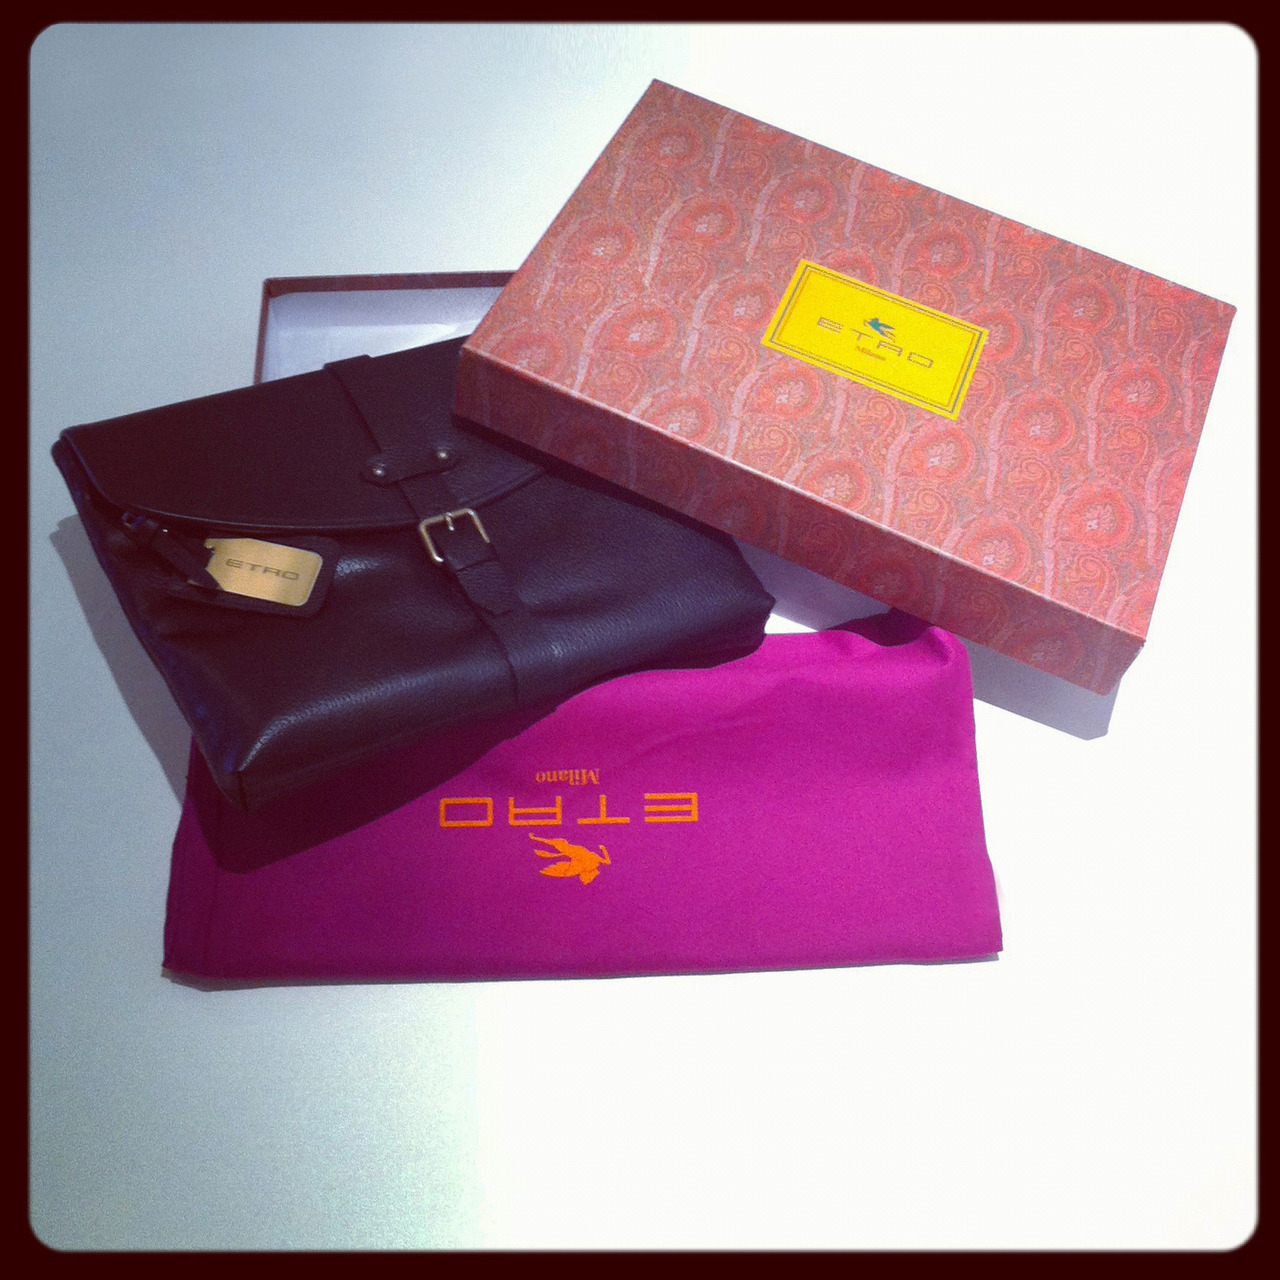 Our sunday fix? Etro's stylish leather portfolio. BUY at: http://bit.ly/SjWOga